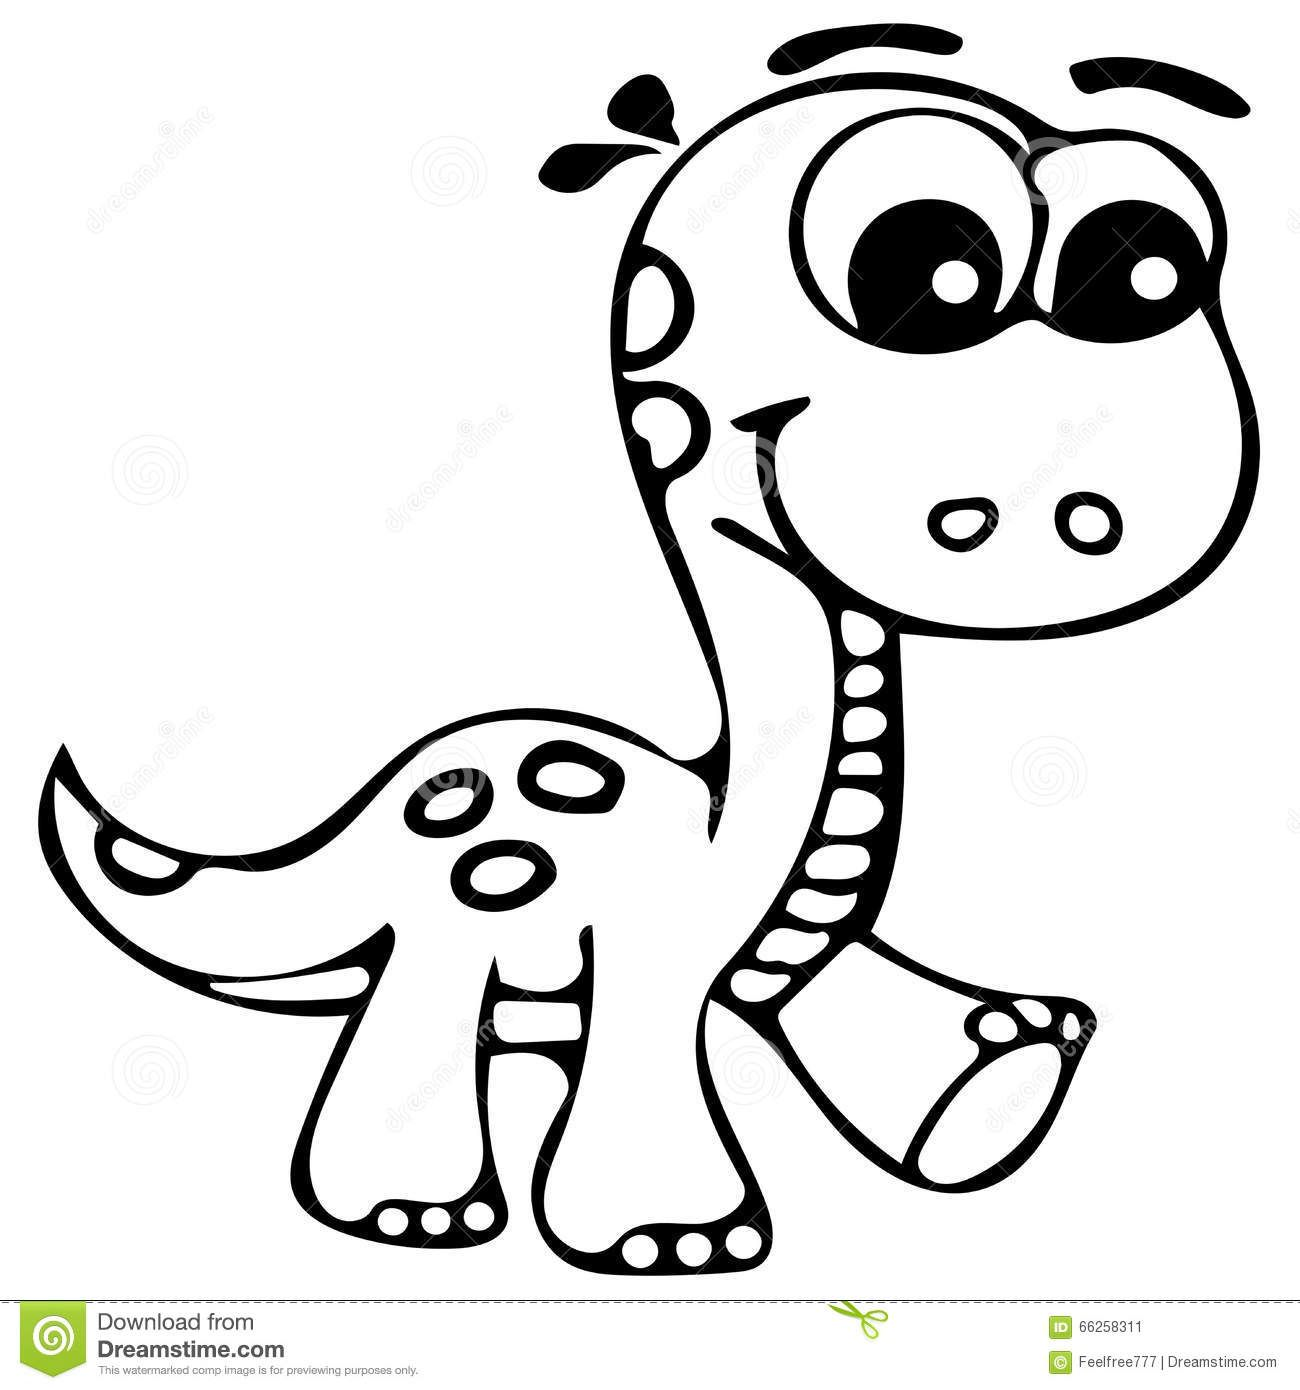 dinosaur printout dinosaur pictures for kids to color if you like printout dinosaur